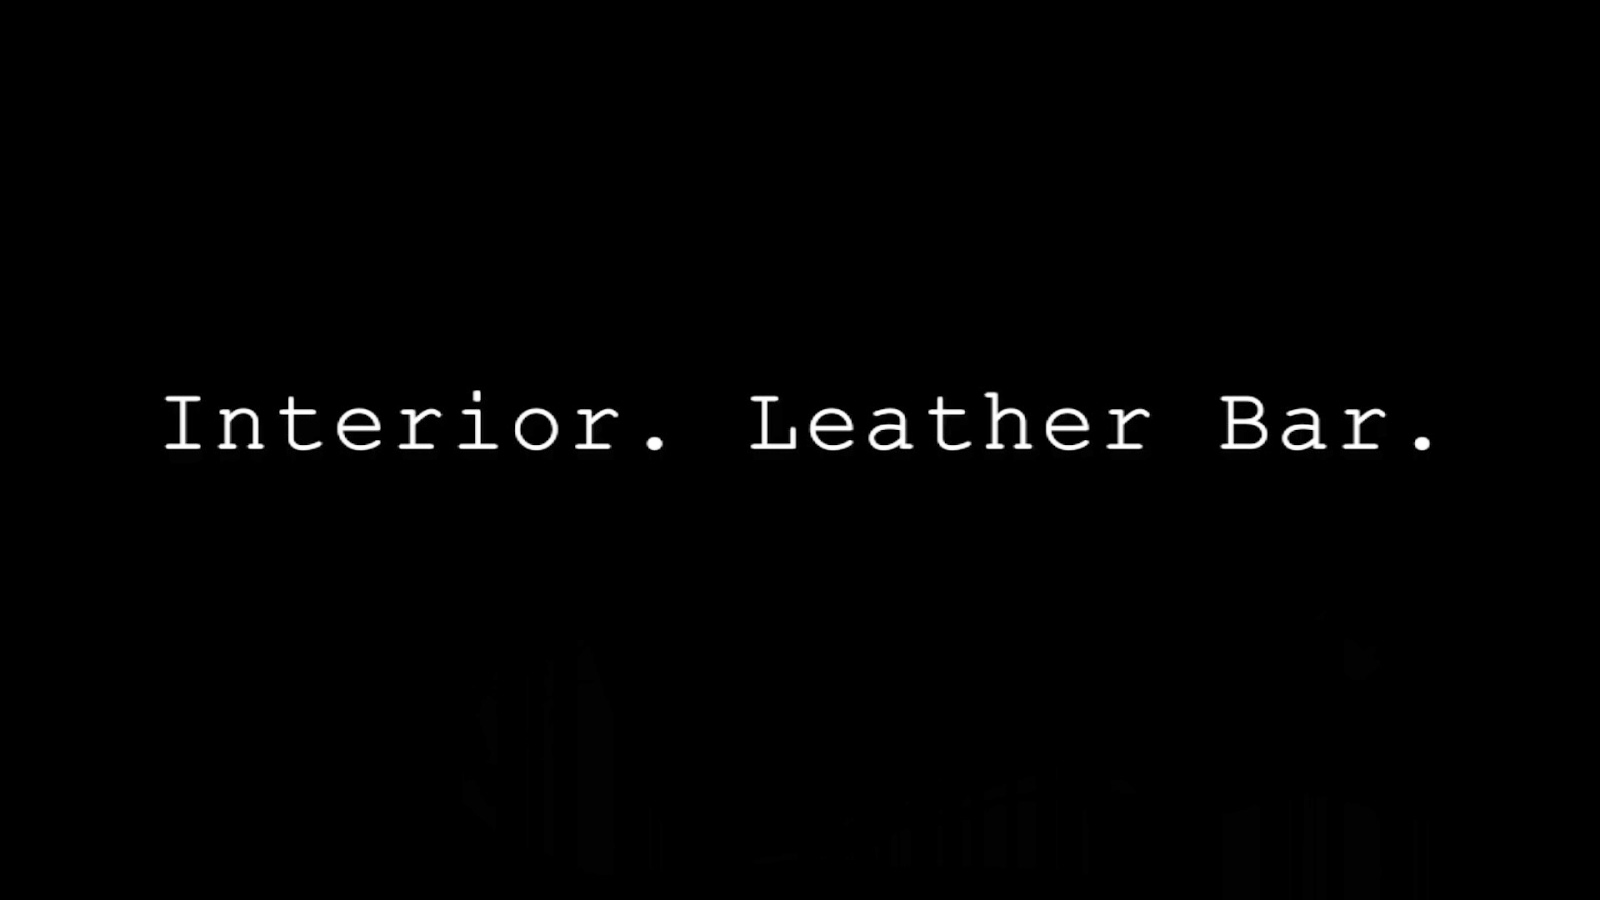 interior leather bar 2013 movie